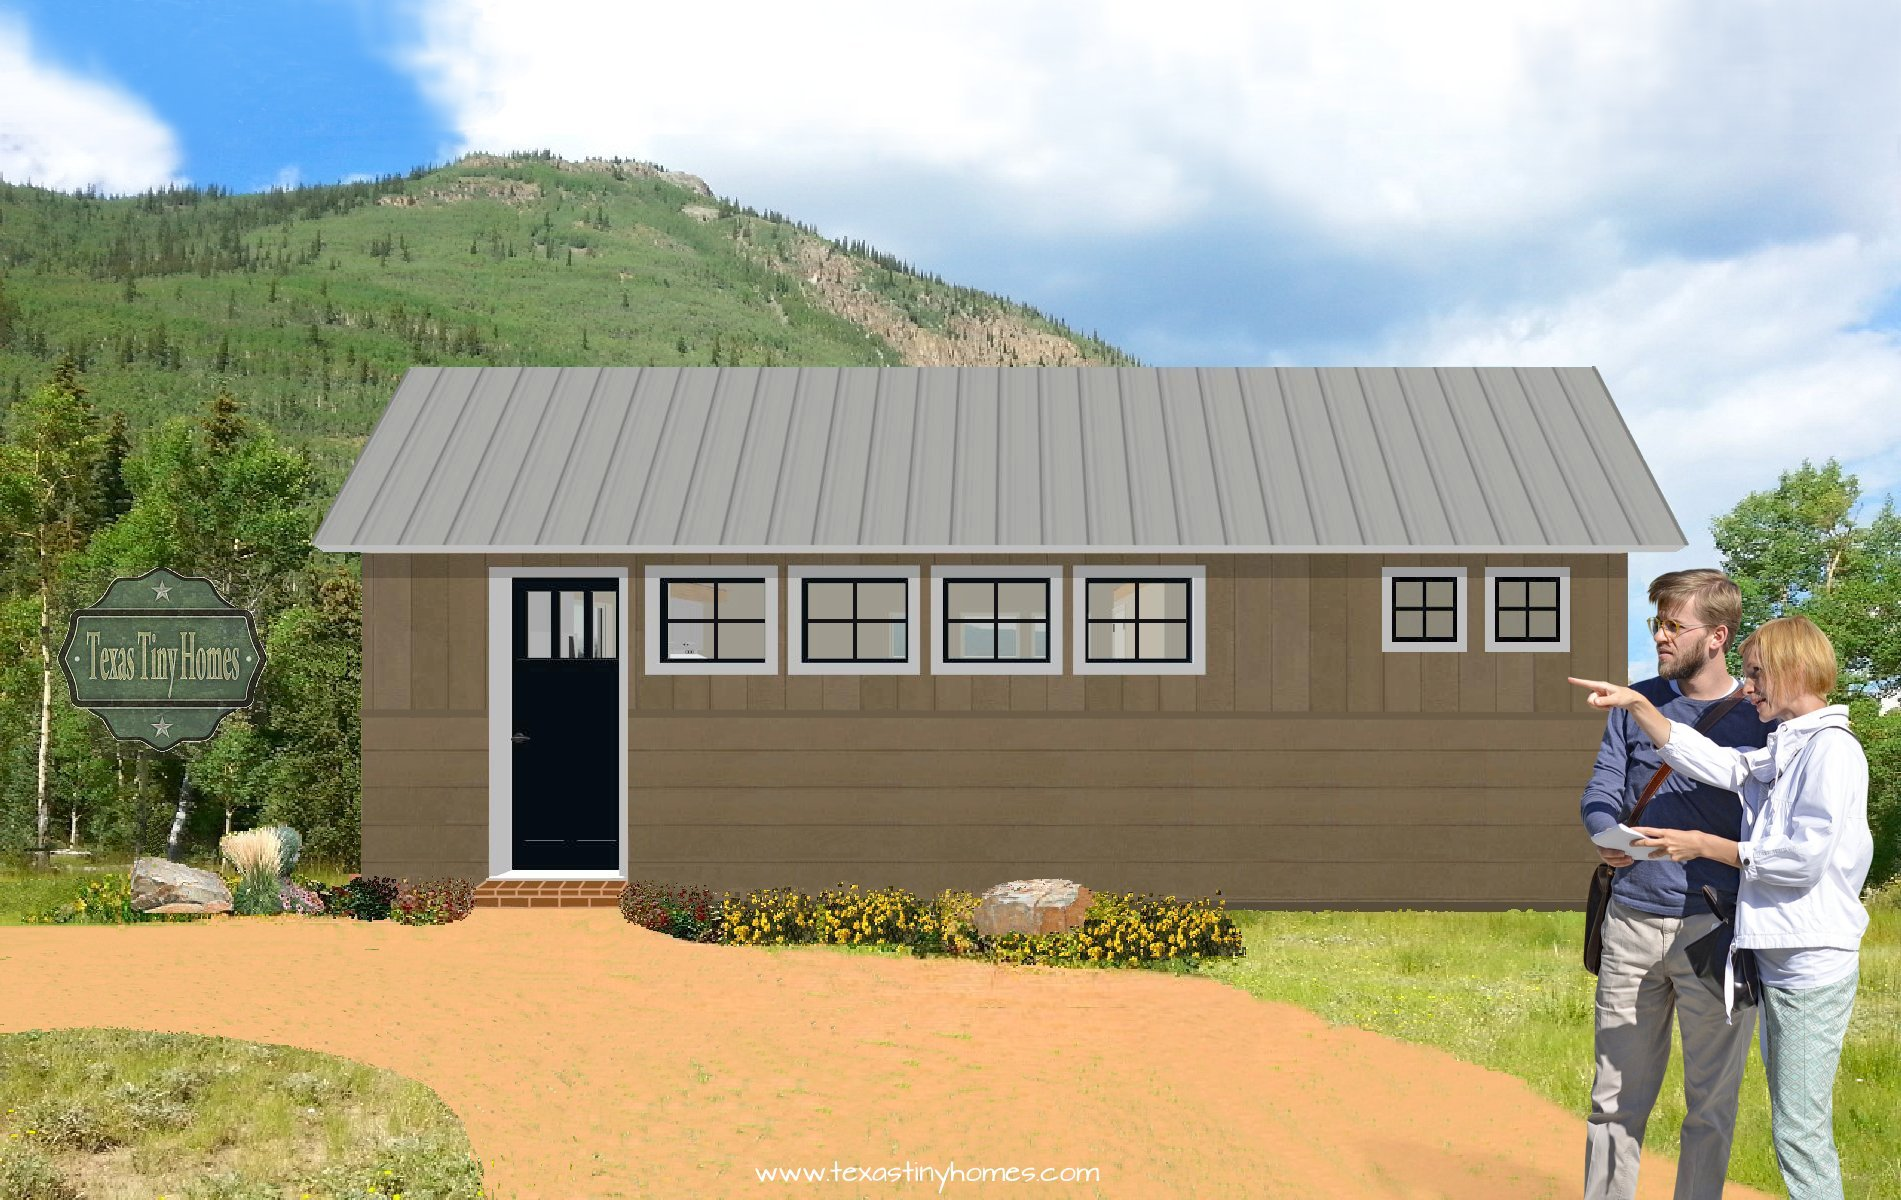 Backyard guest houses, backyard mother in-law-suites, ship-able tiny homes, tiny backyard houses, texas tiny homes, tiny homes for sale in texas